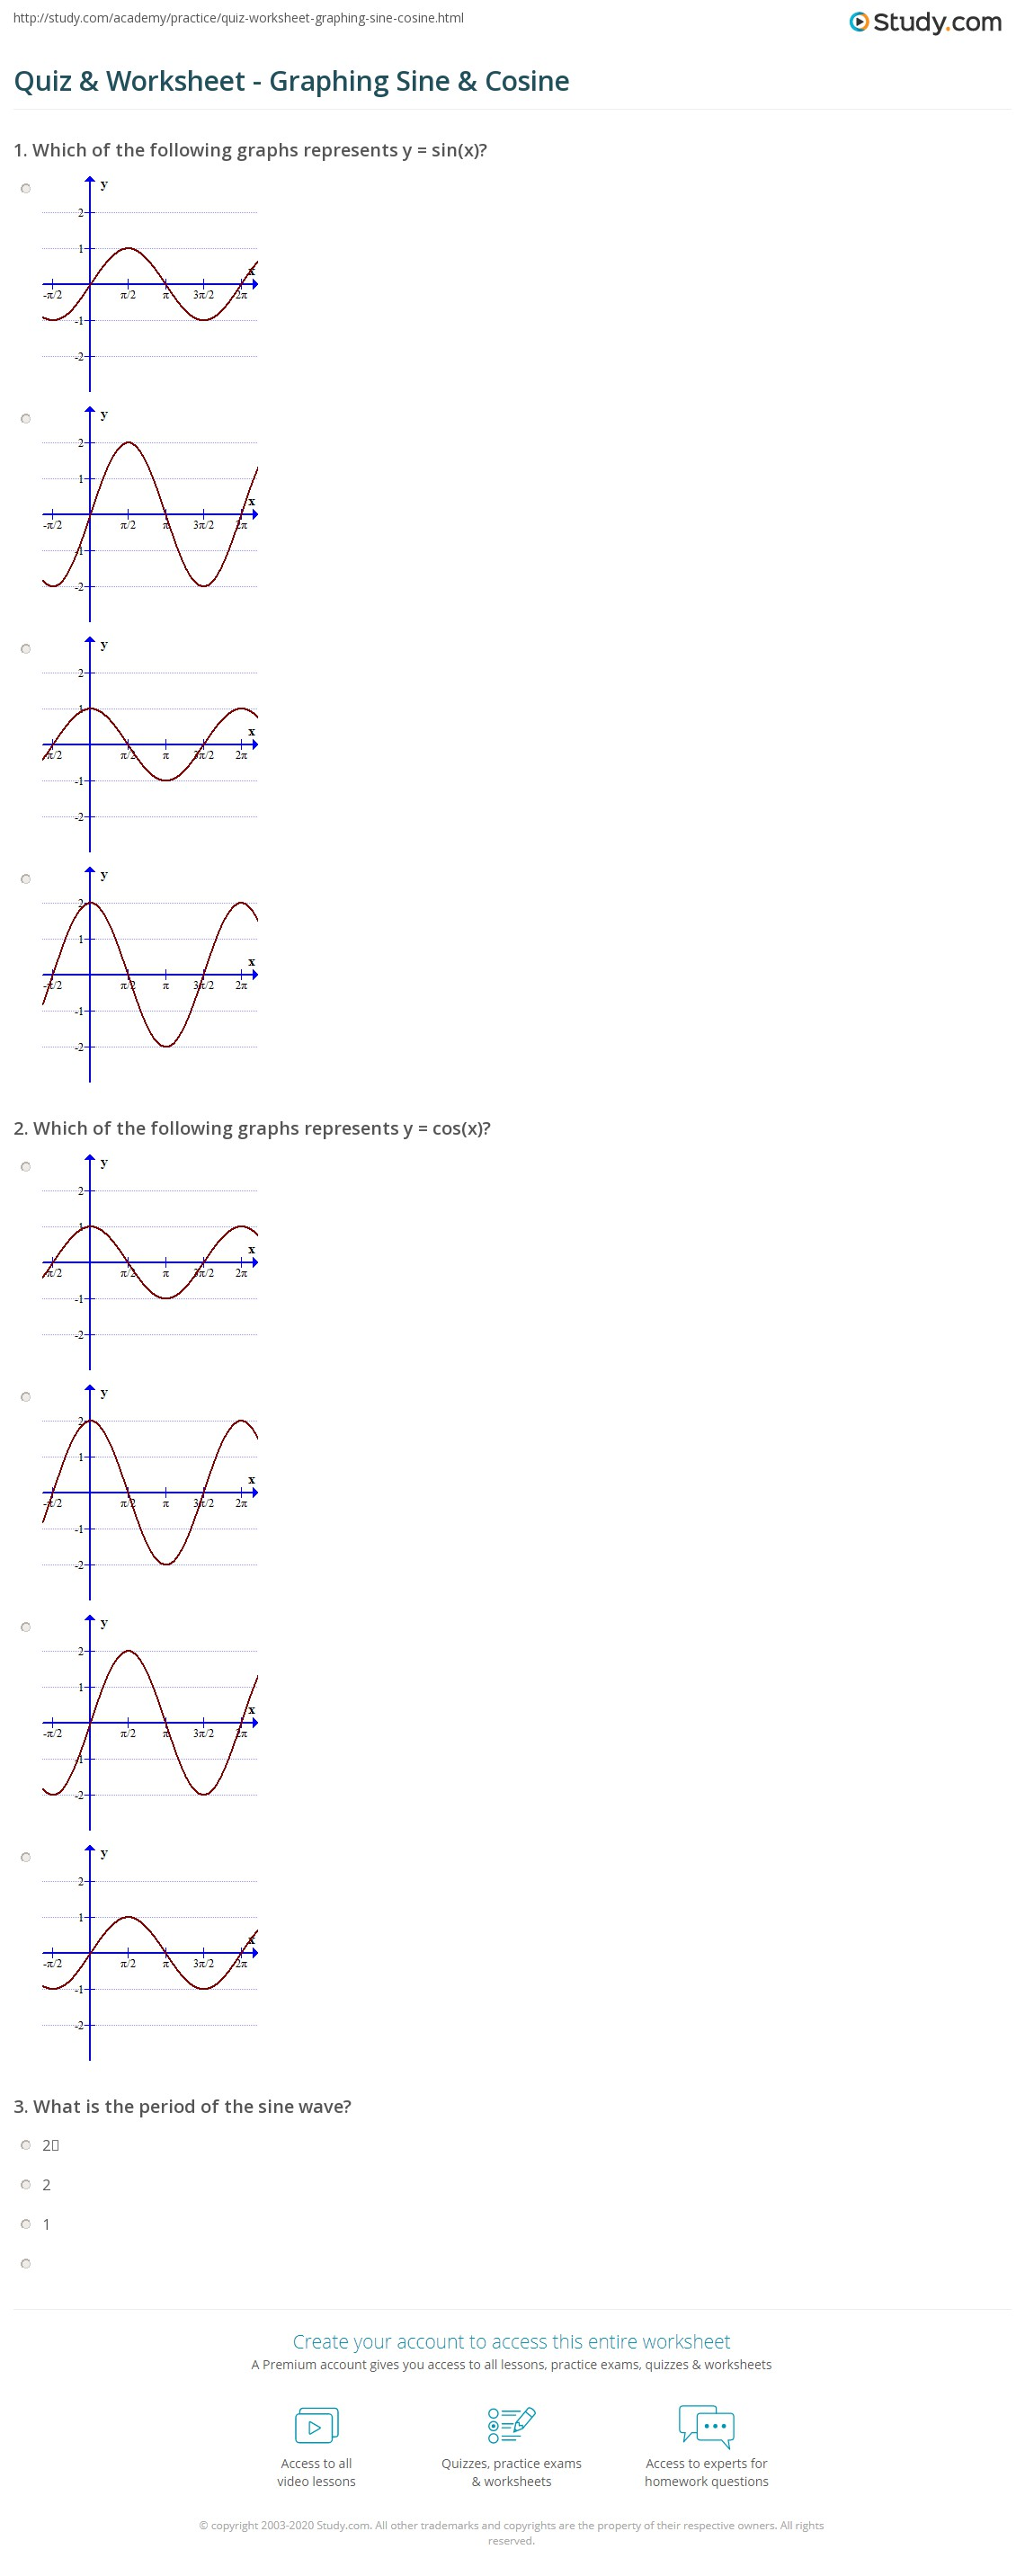 Quiz & Worksheet - Graphing Sine & Cosine | Study.com